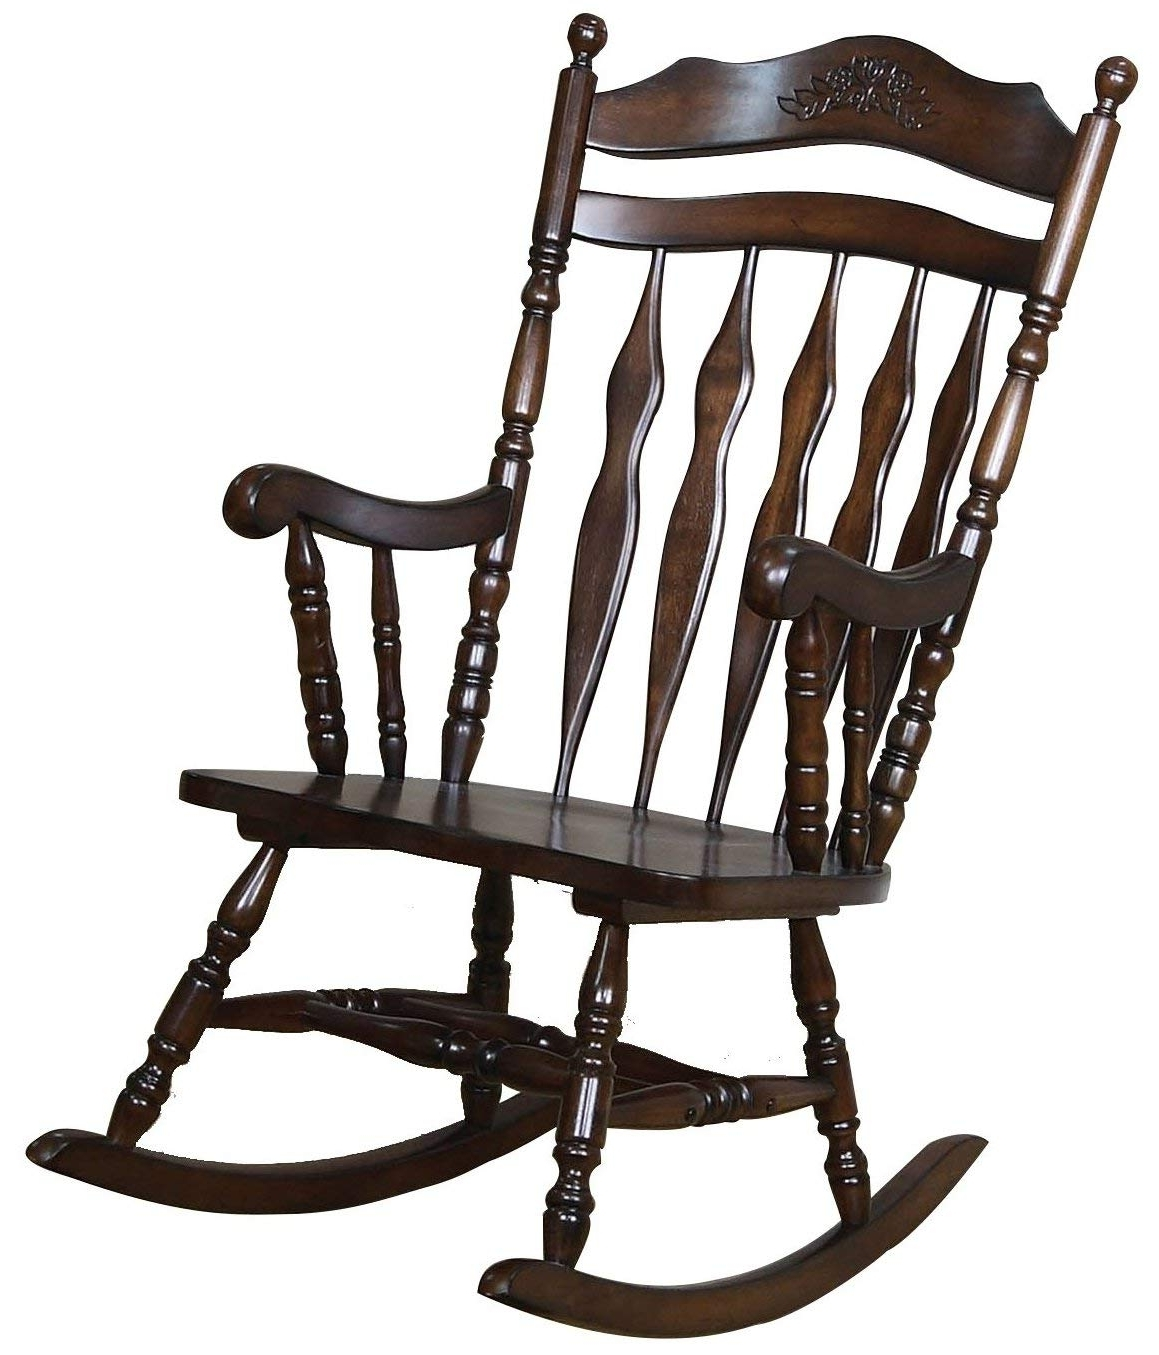 Amazon: Coaster Traditional Medium Brown Wood Rocking Chair With Well Known Rocking Chairs With Lumbar Support (View 12 of 15)